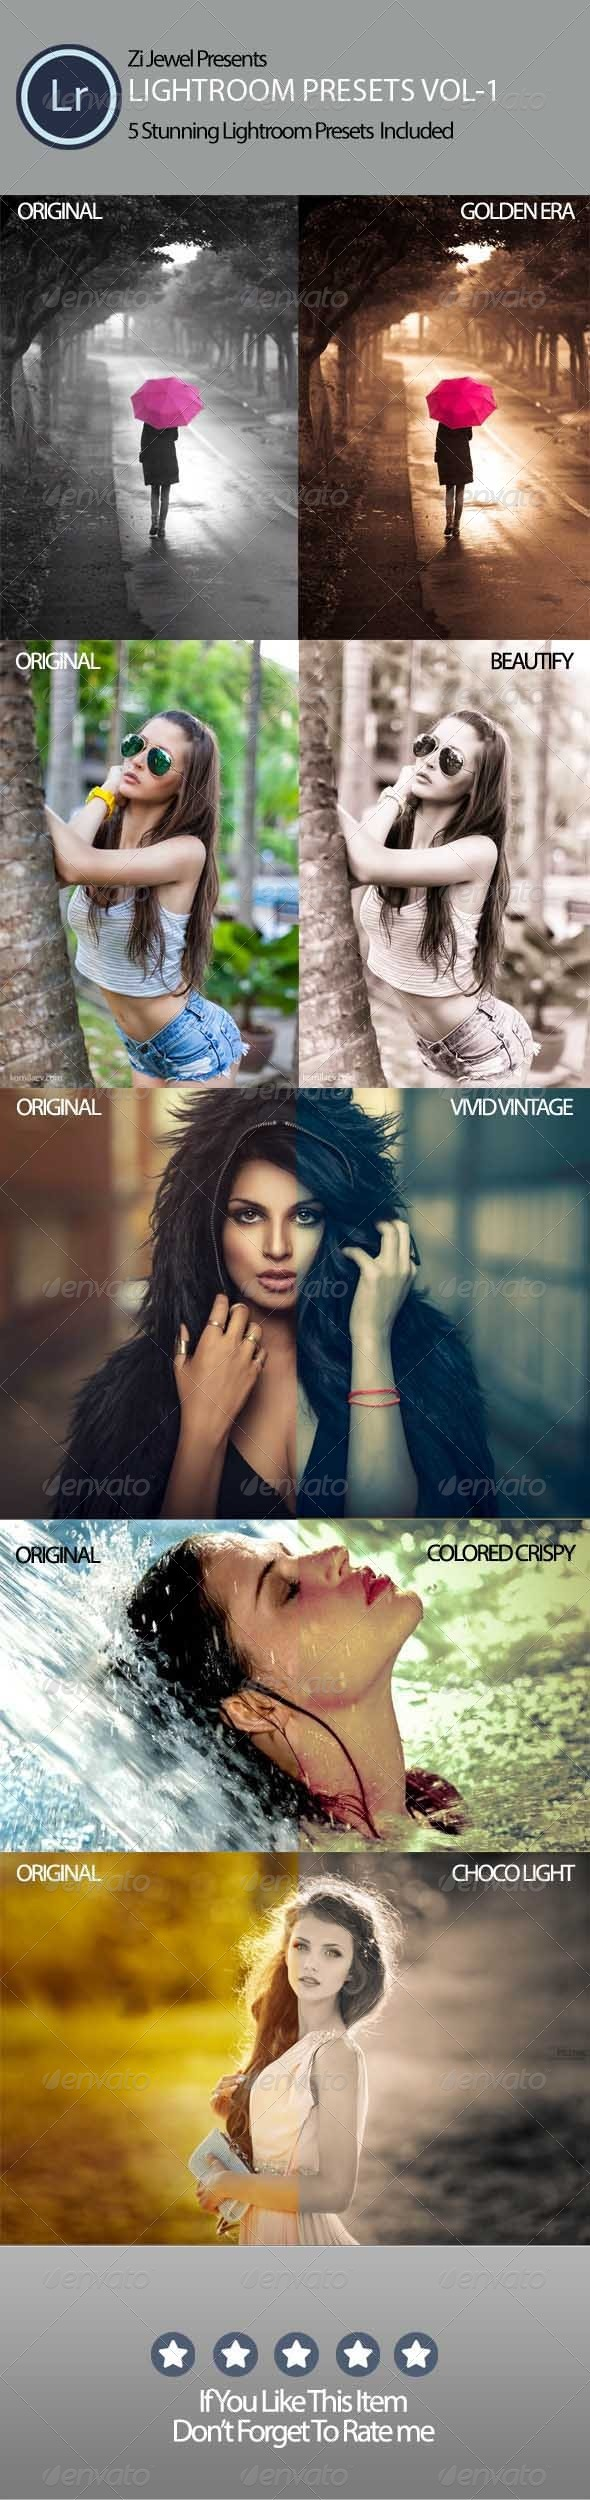 GraphicRiver Lightroom Presets vol-1 8193895